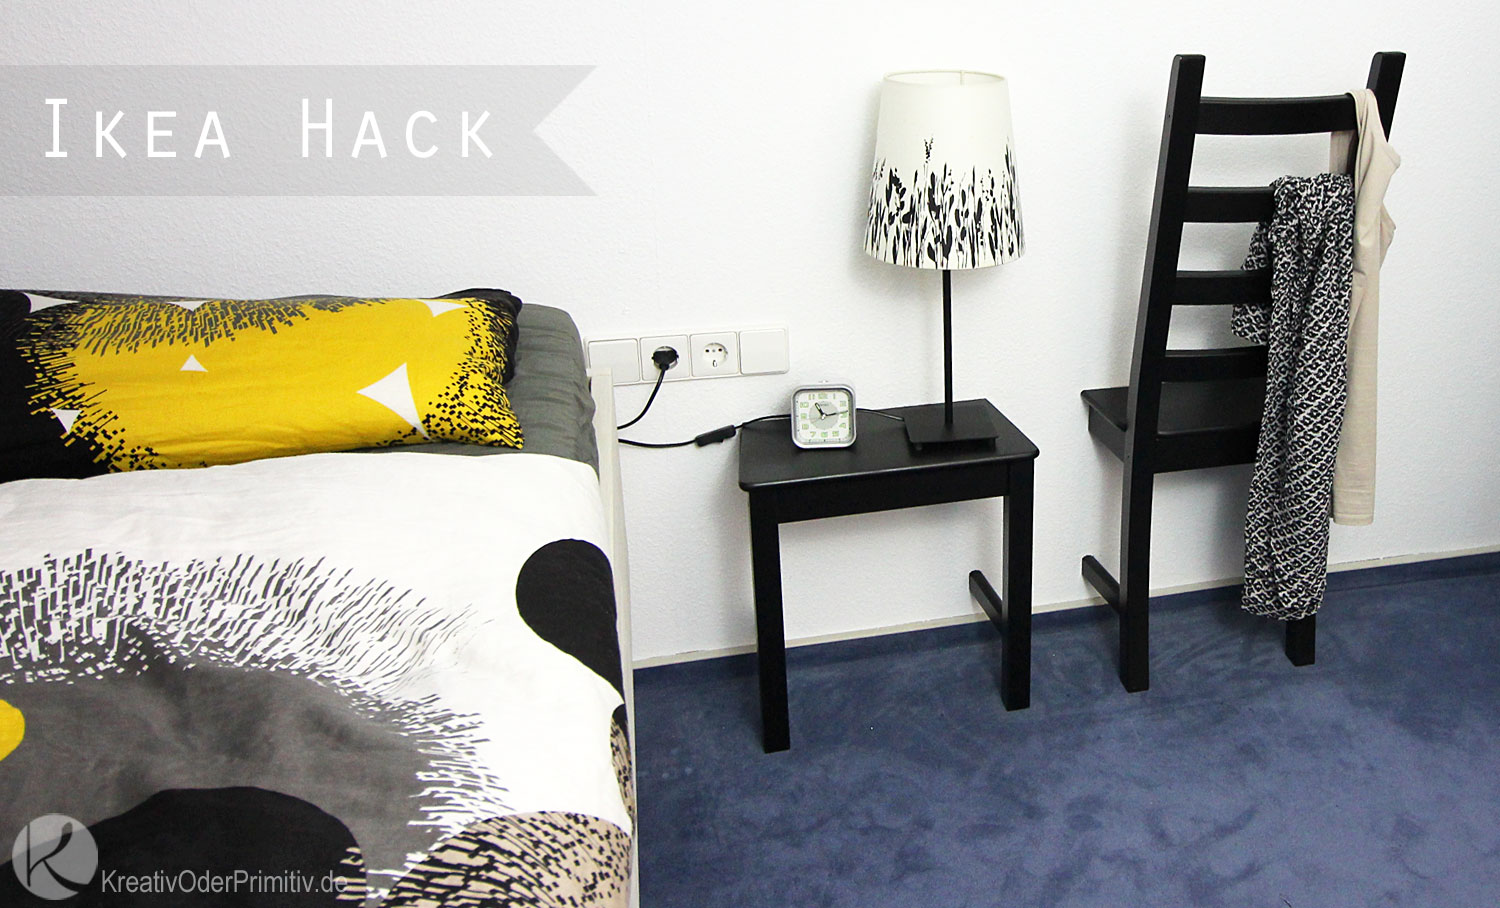 kreativ oder primitiv stuhl als herrendiener ikea hack. Black Bedroom Furniture Sets. Home Design Ideas